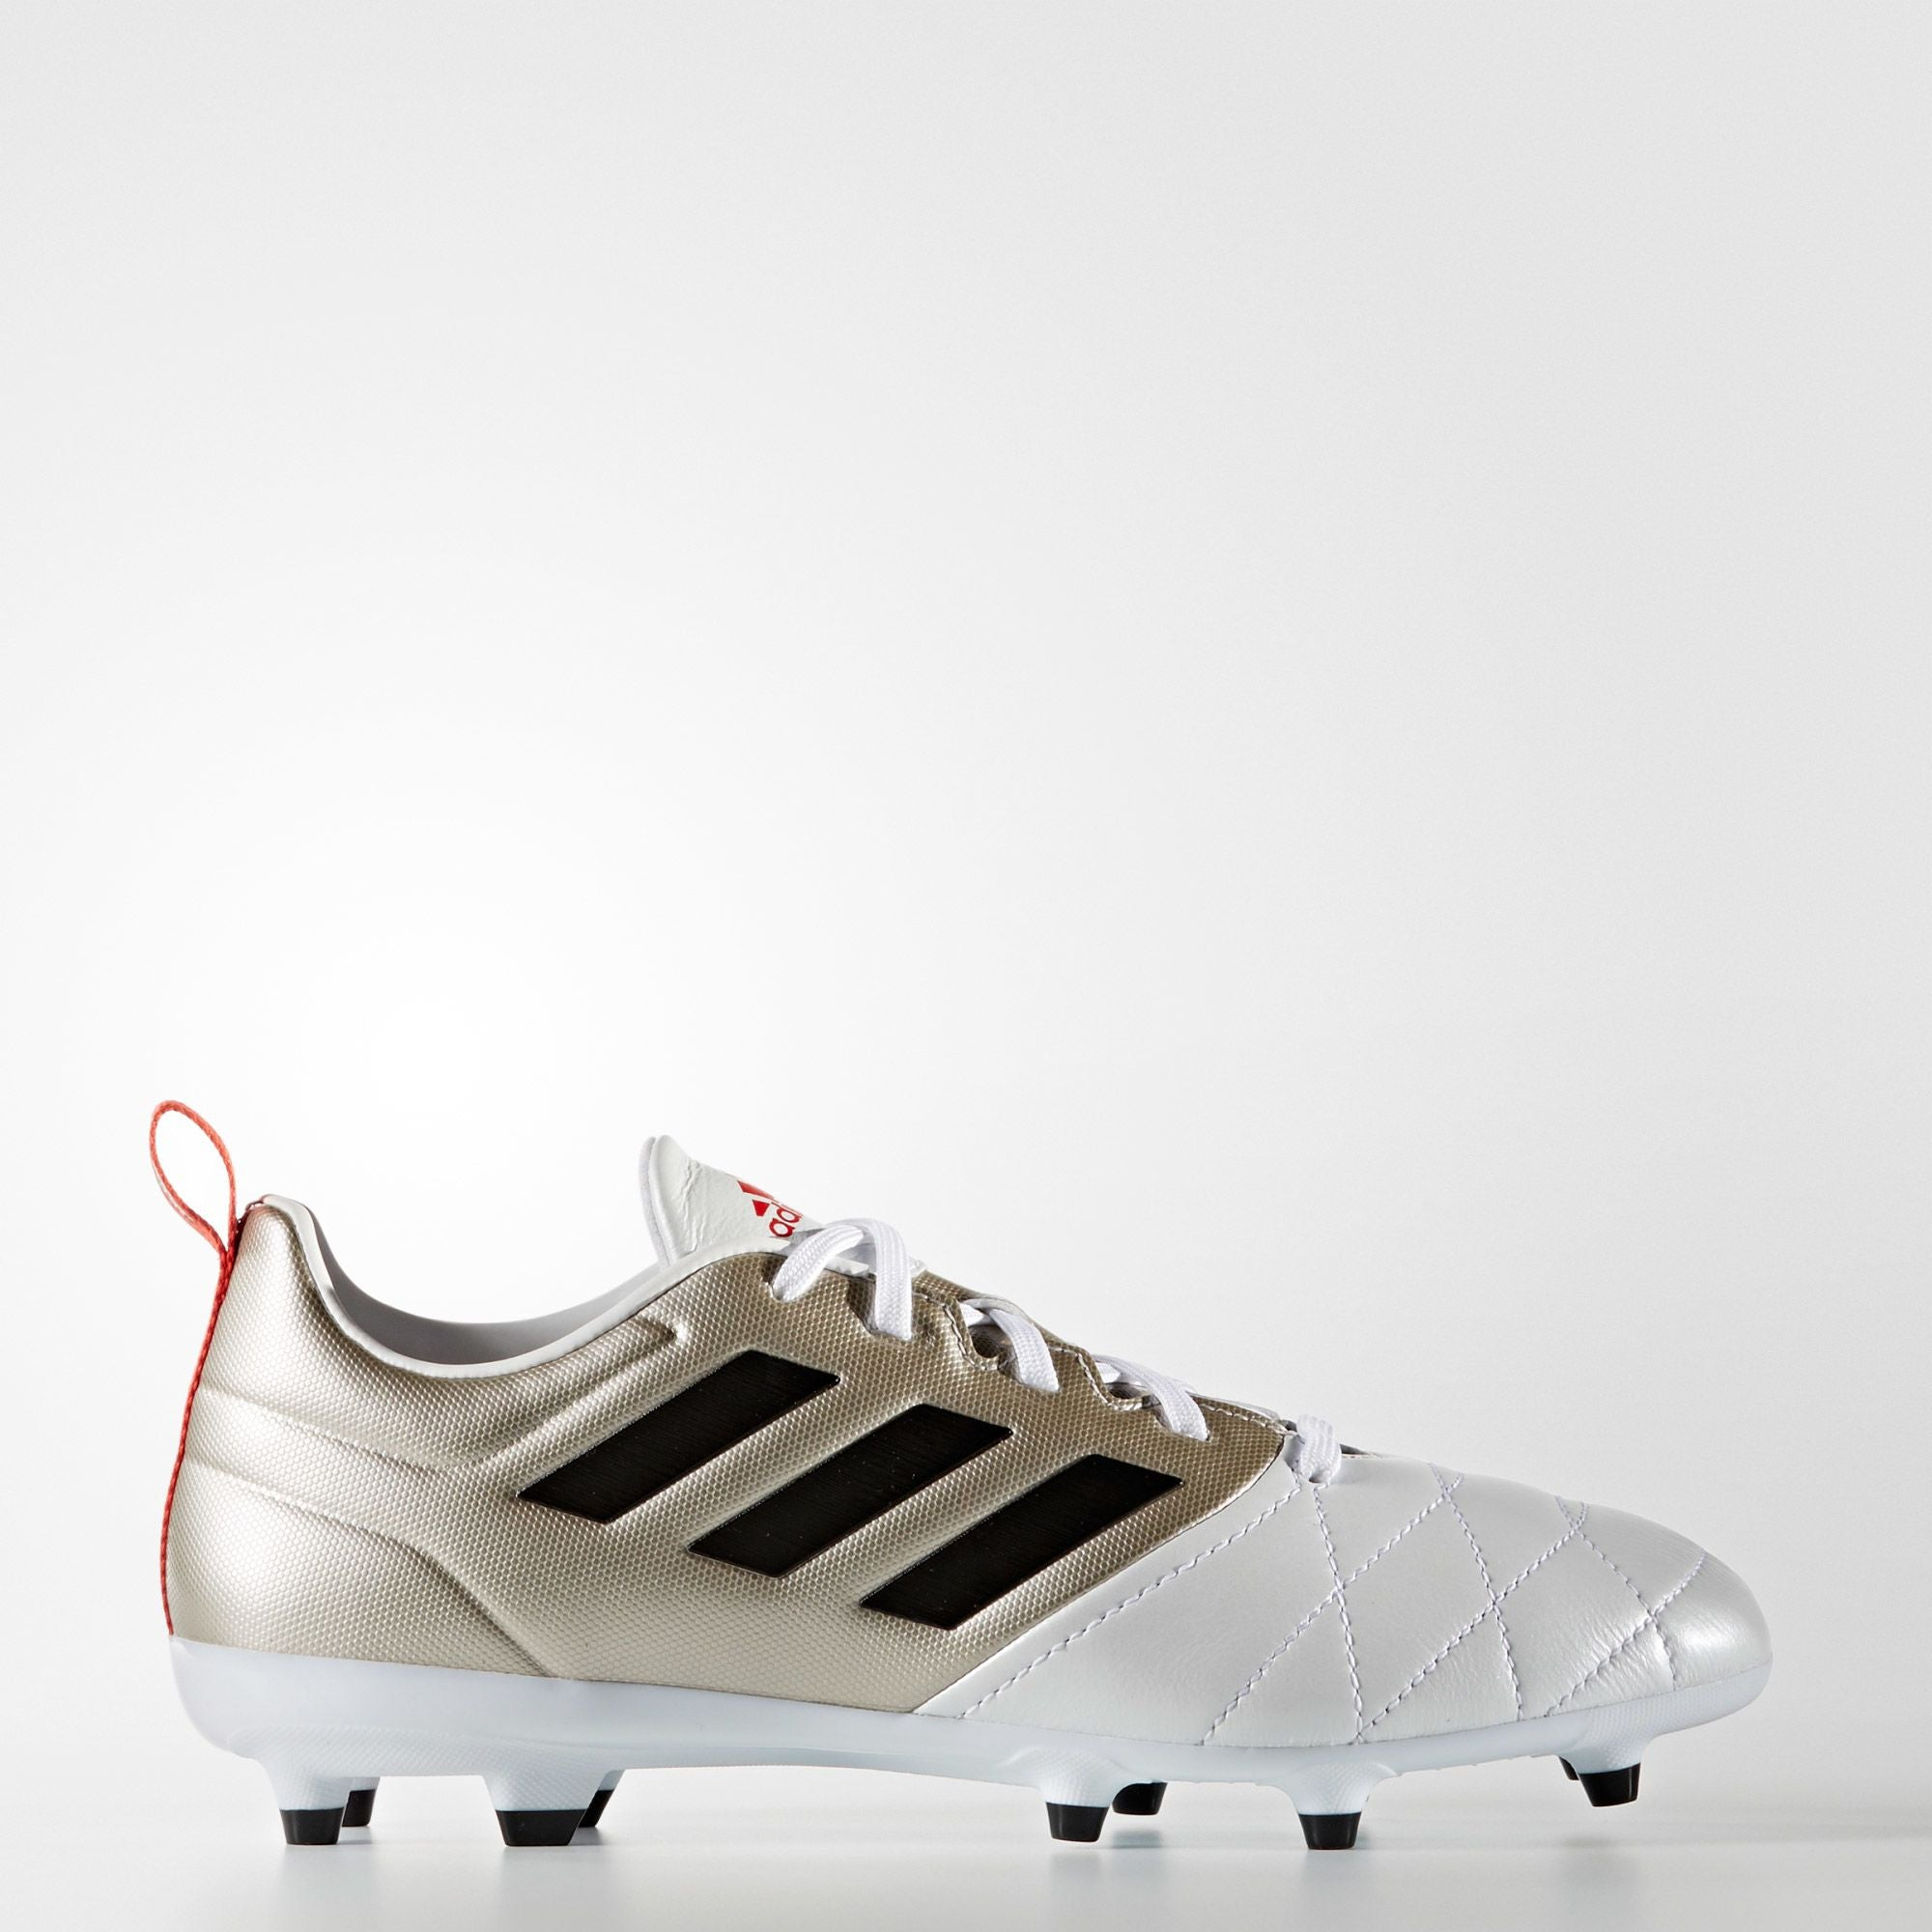 cc03813ee5e https://laligasoccer.ca/ daily https://laligasoccer.ca/products/adidas ...